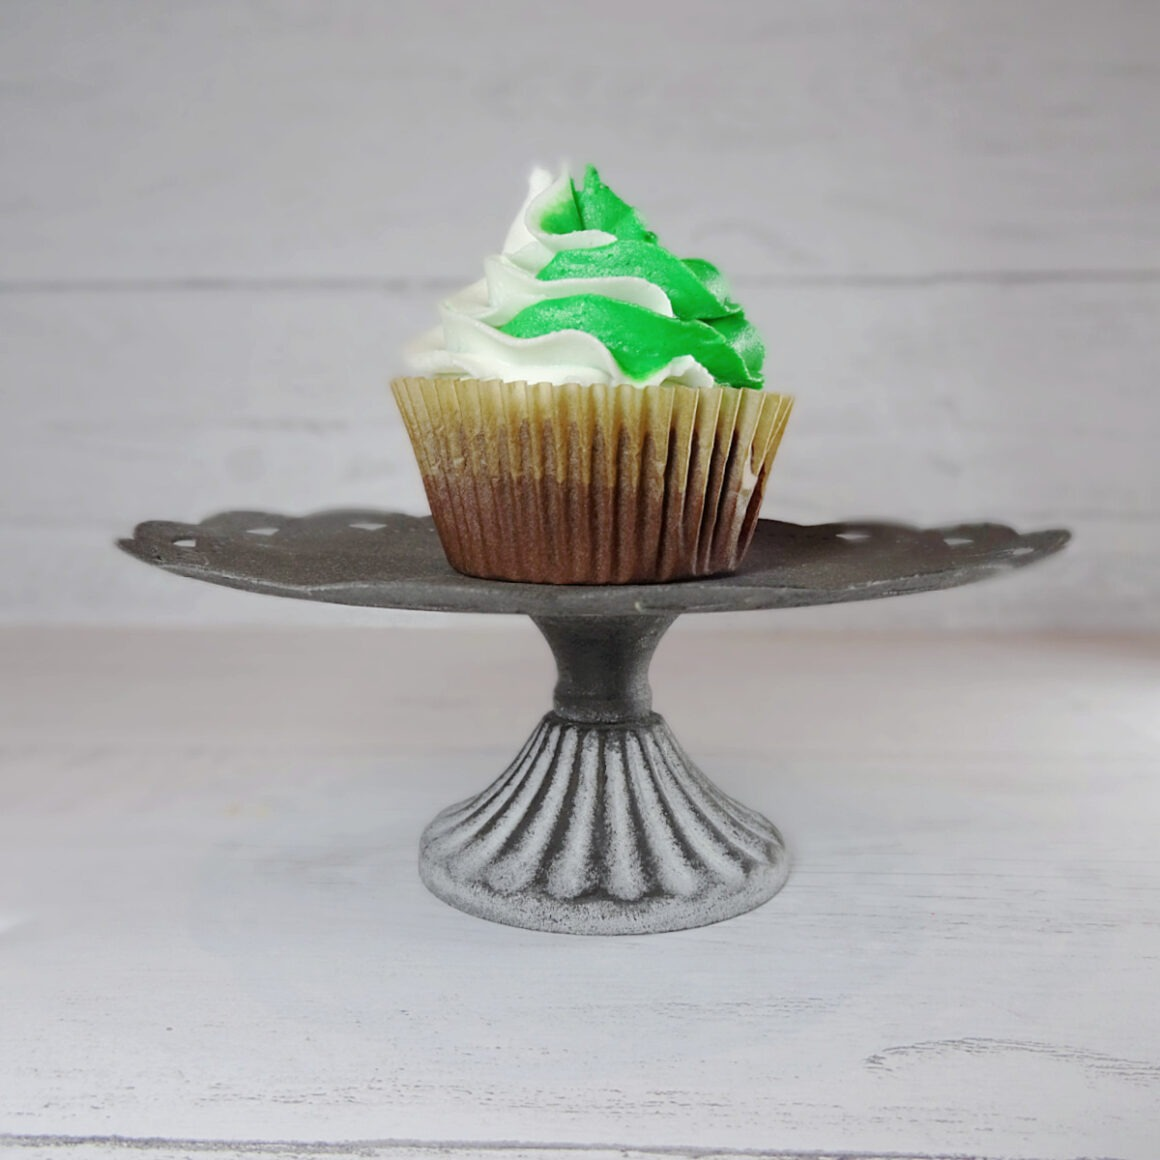 Green and white frosted chocolate cupcake on a metal stand by Champagne and Sugarplums